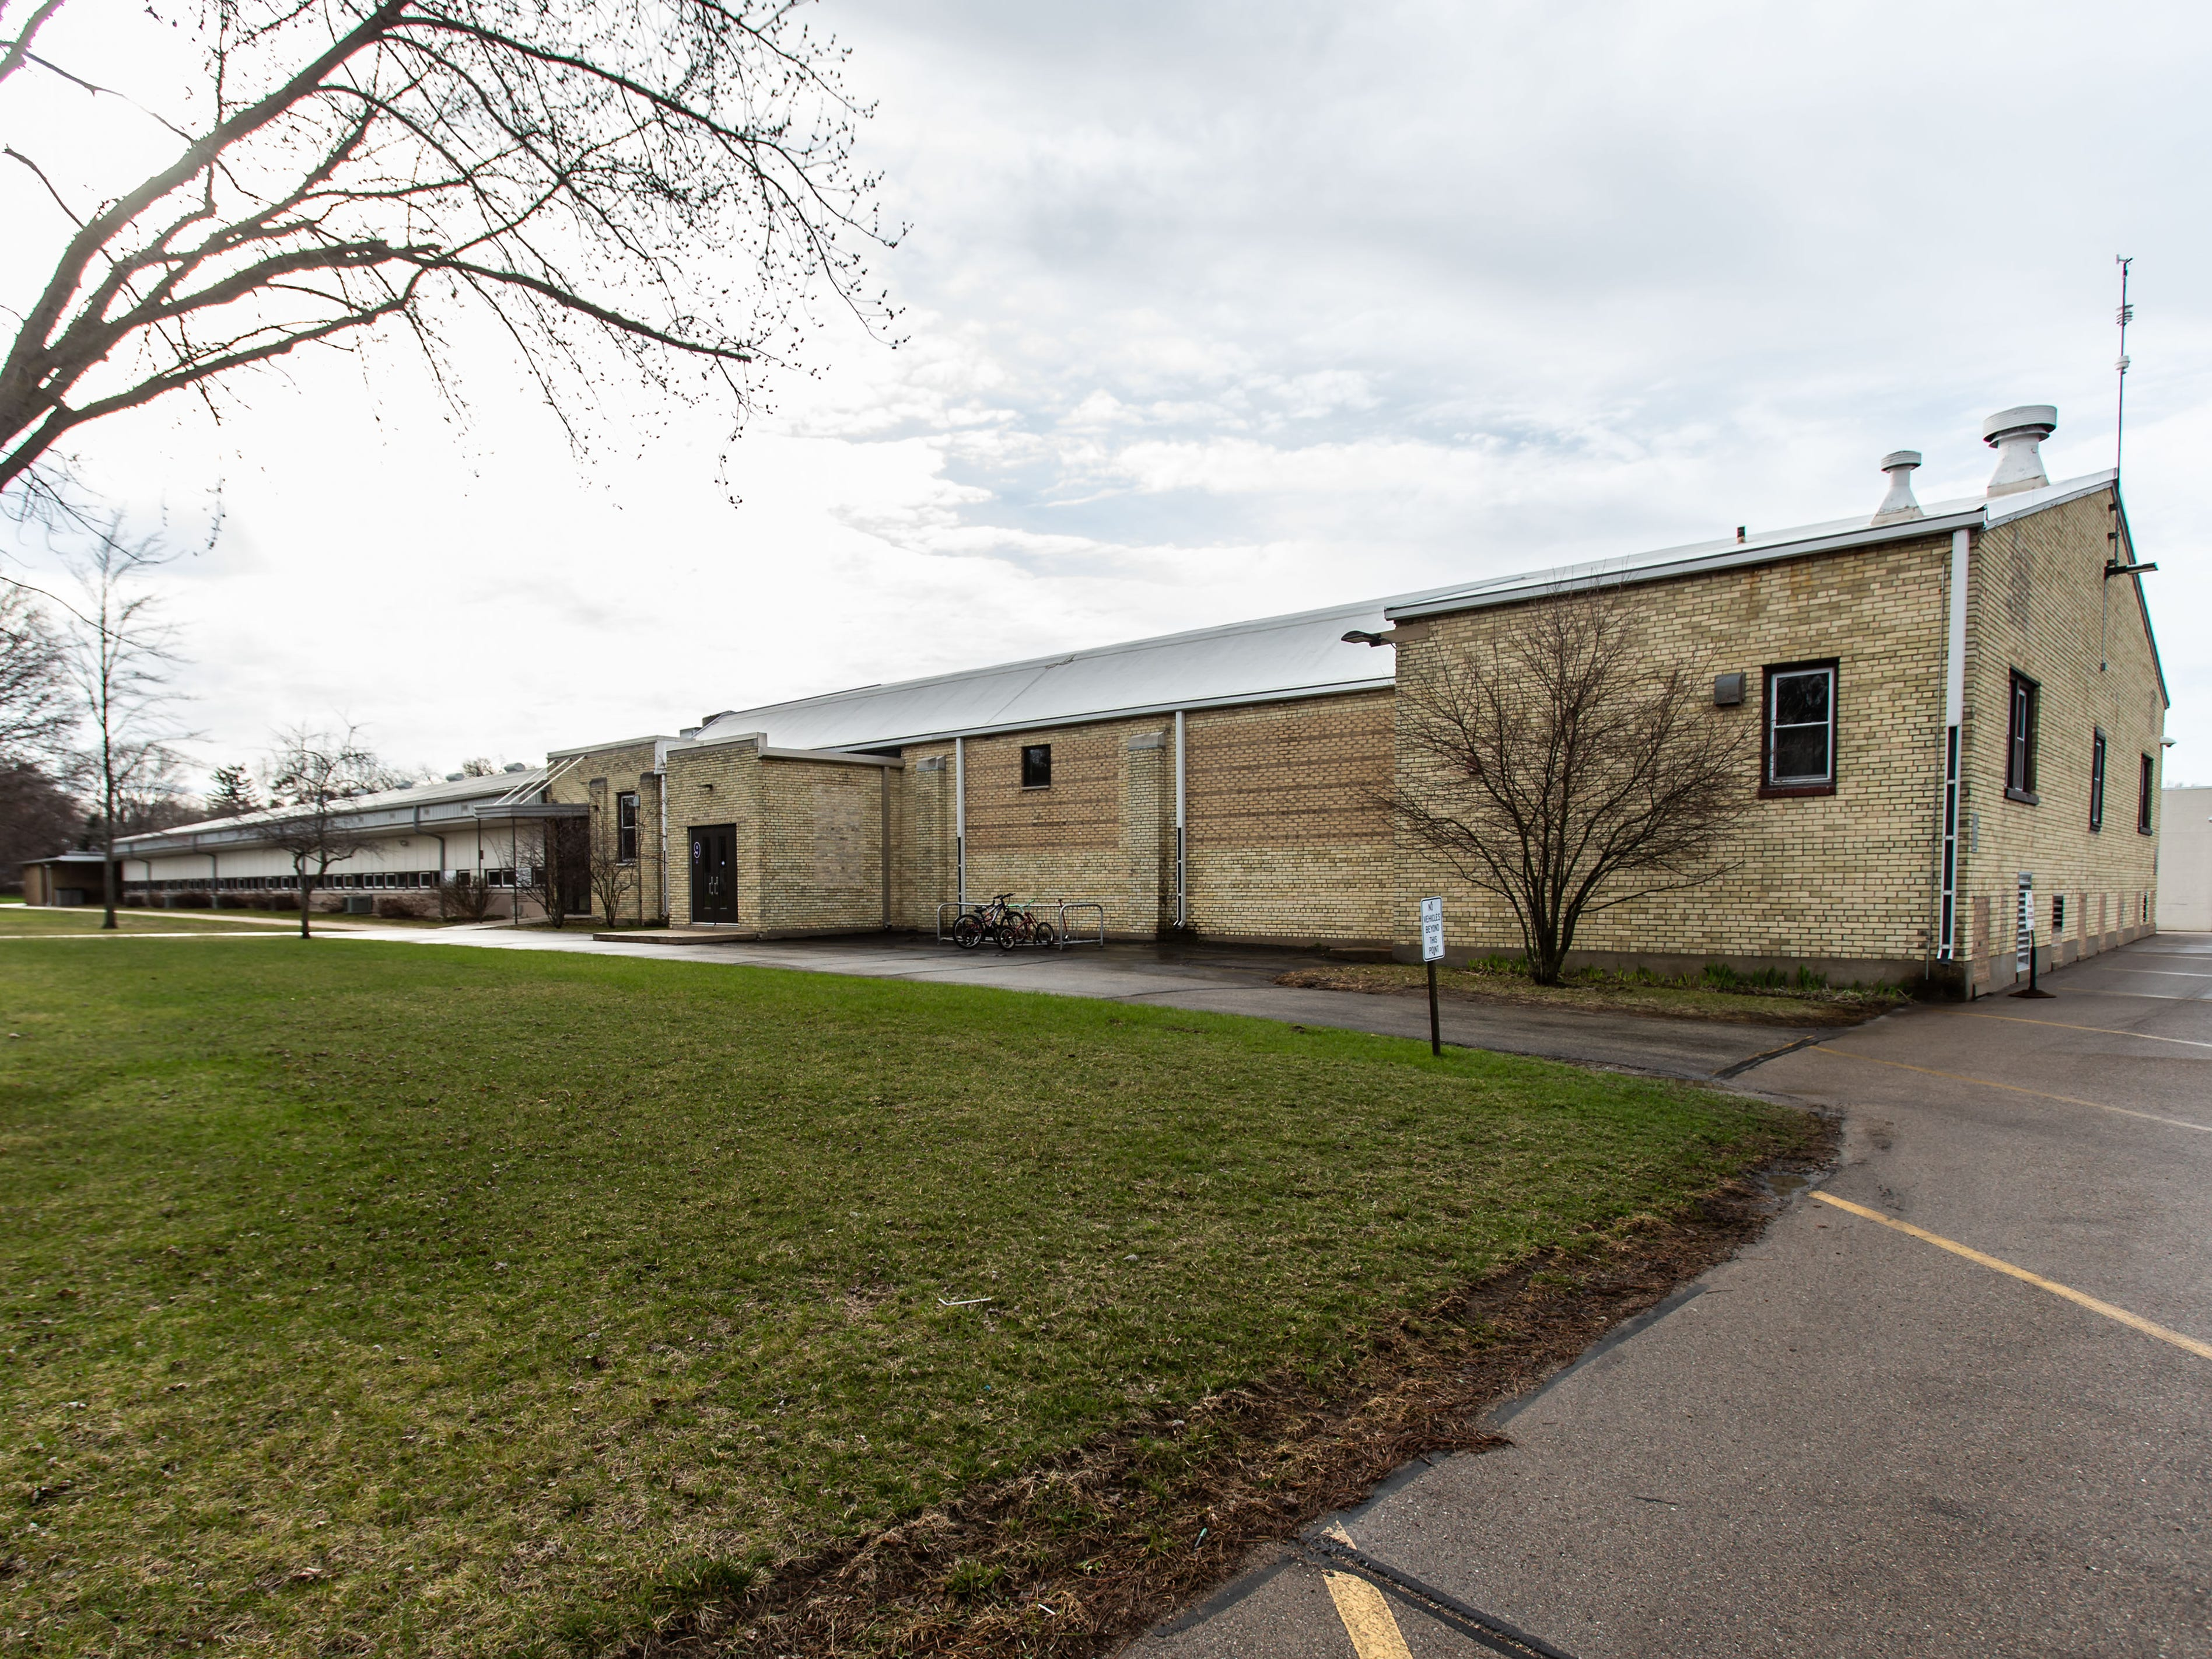 Palmyra Elementary School as seen on Tuesday, April 16, 2019.